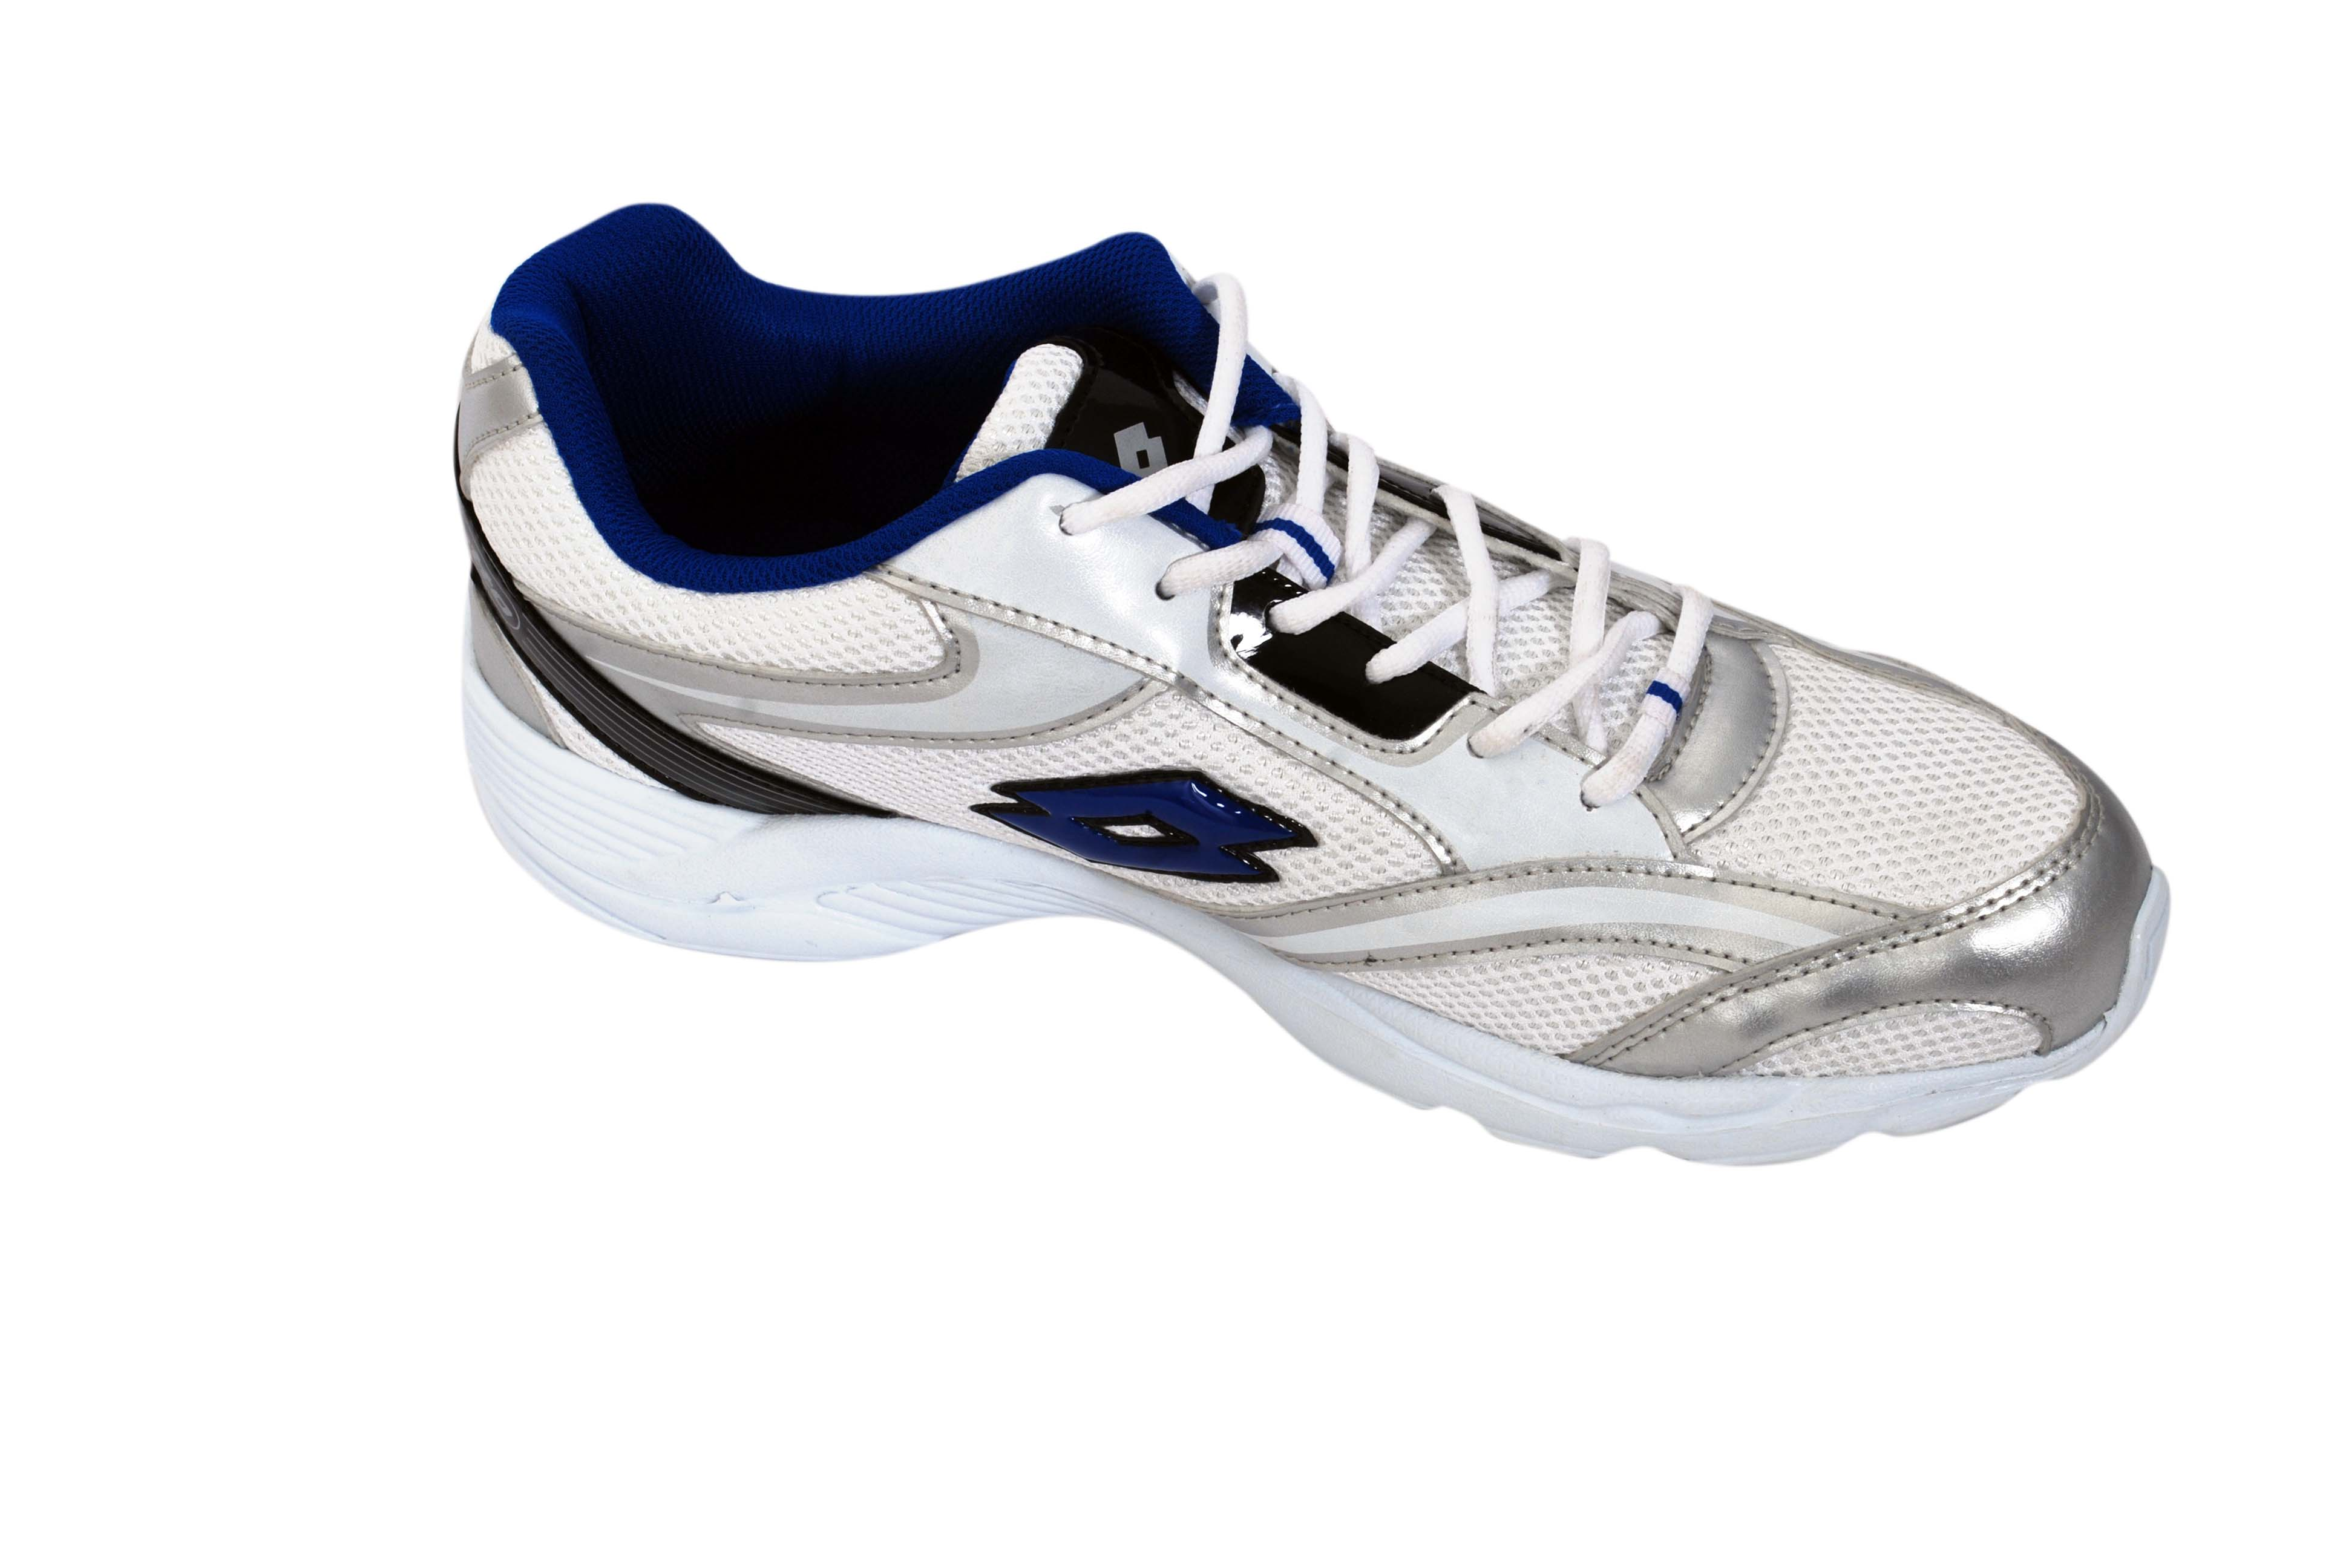 lotto sports shoe rs 849 shopping deals